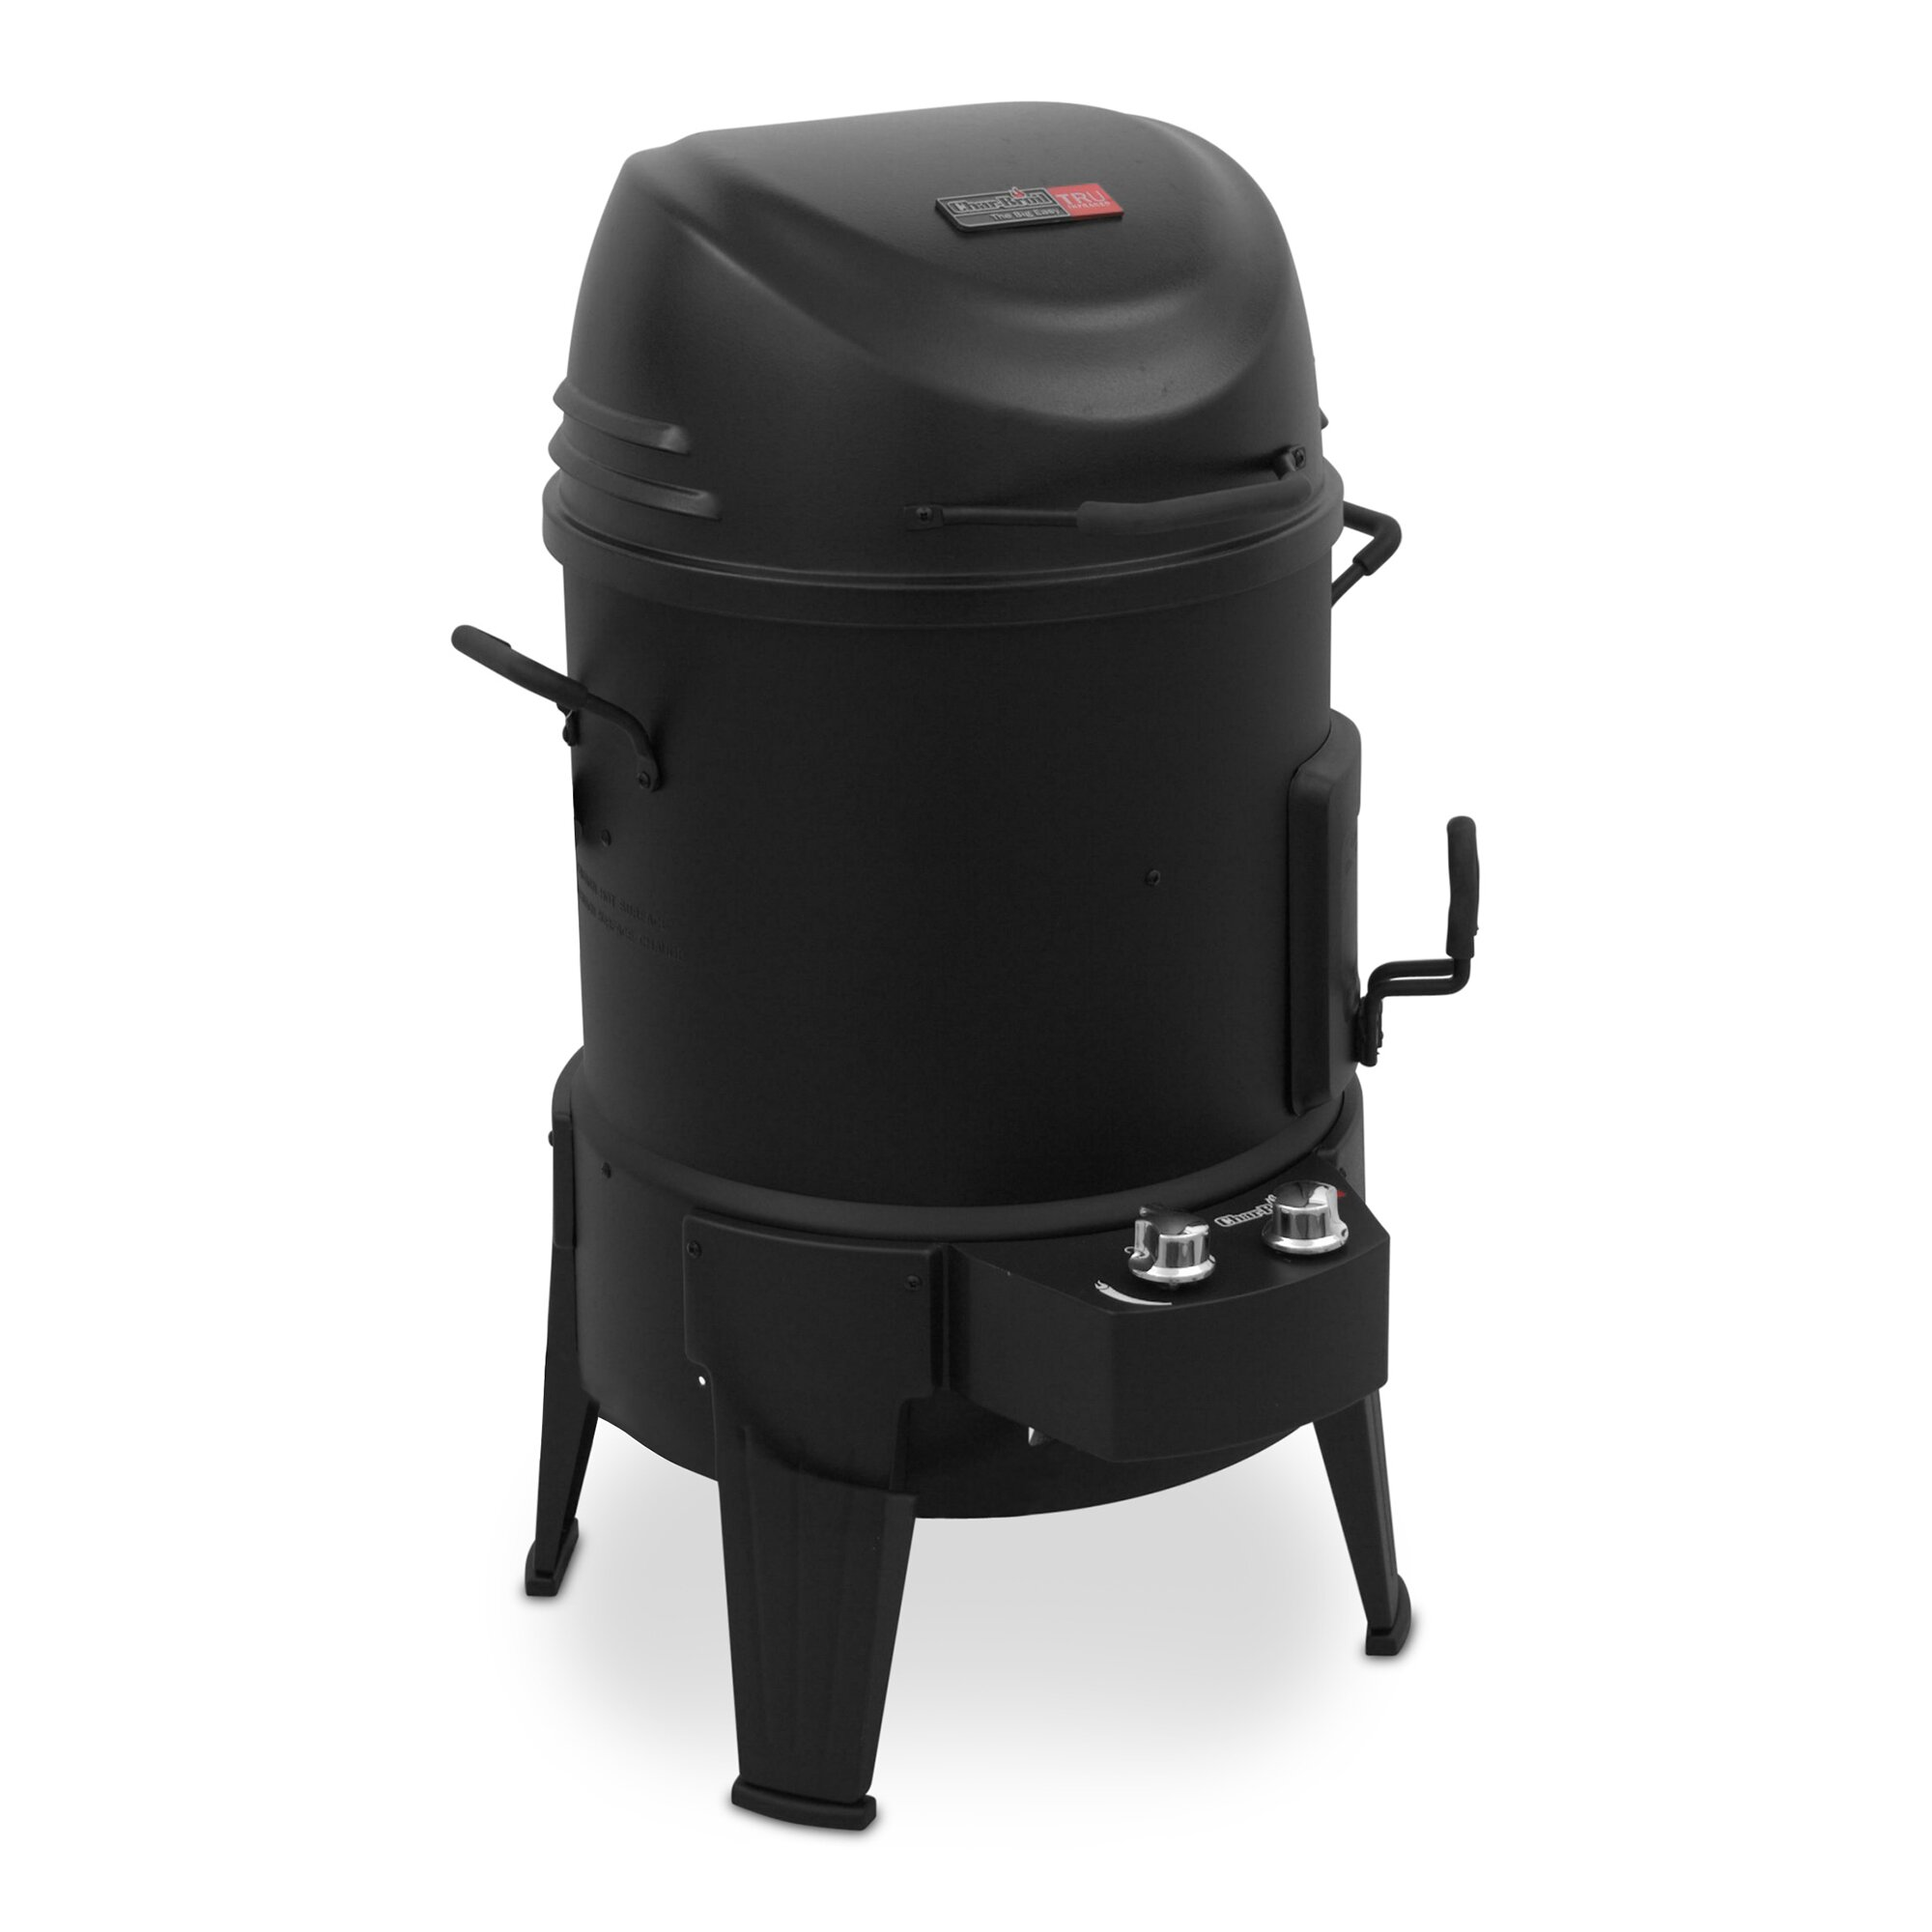 charbroil the big easy tru infrared propane smoker roaster and grill reviews wayfair. Black Bedroom Furniture Sets. Home Design Ideas